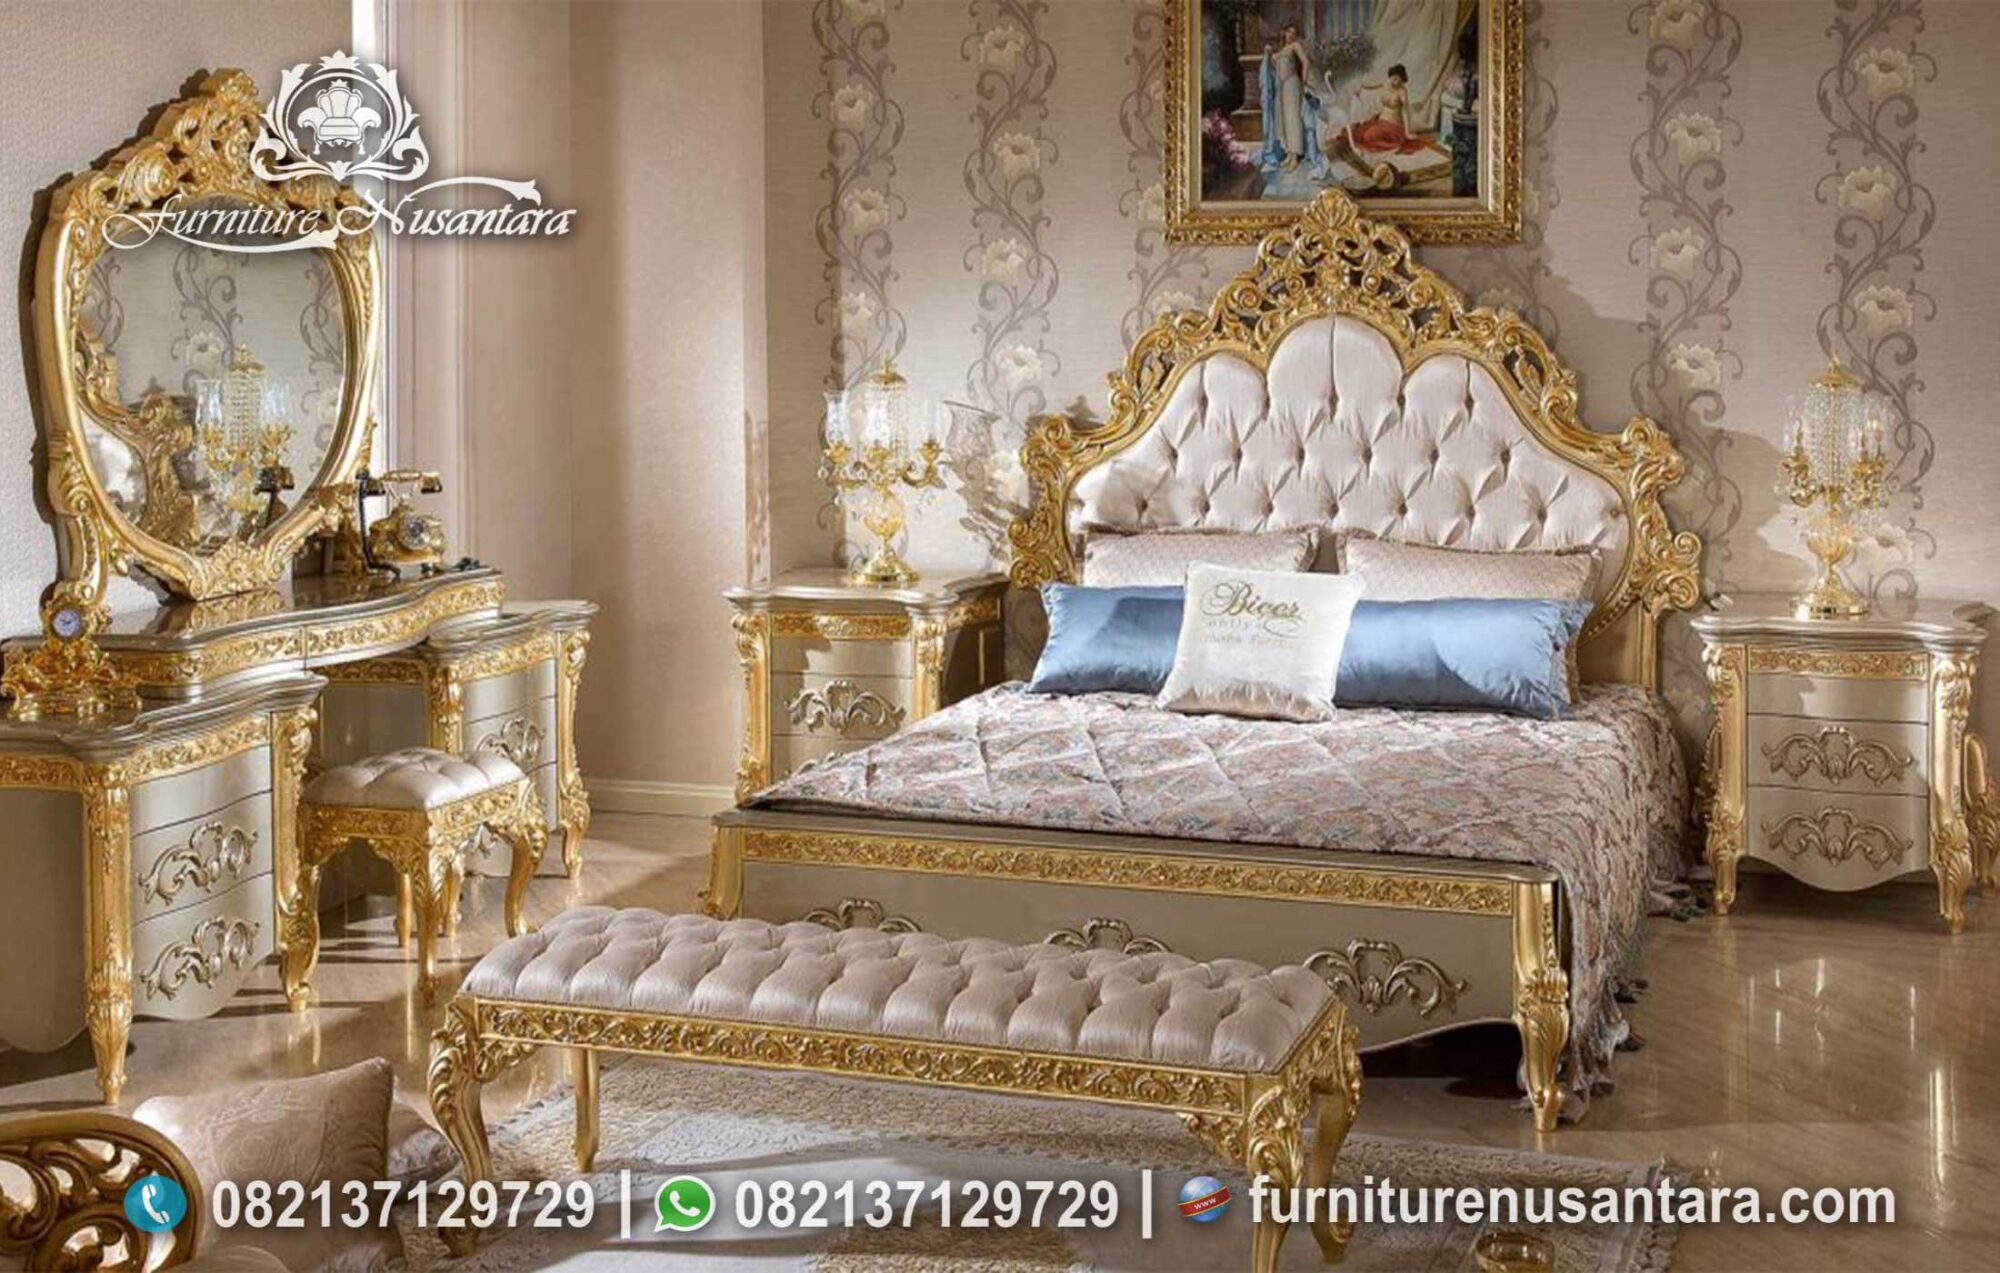 Kamar Set Klasik Gold Leaf Mewah KS-227, Furniture Nusantara